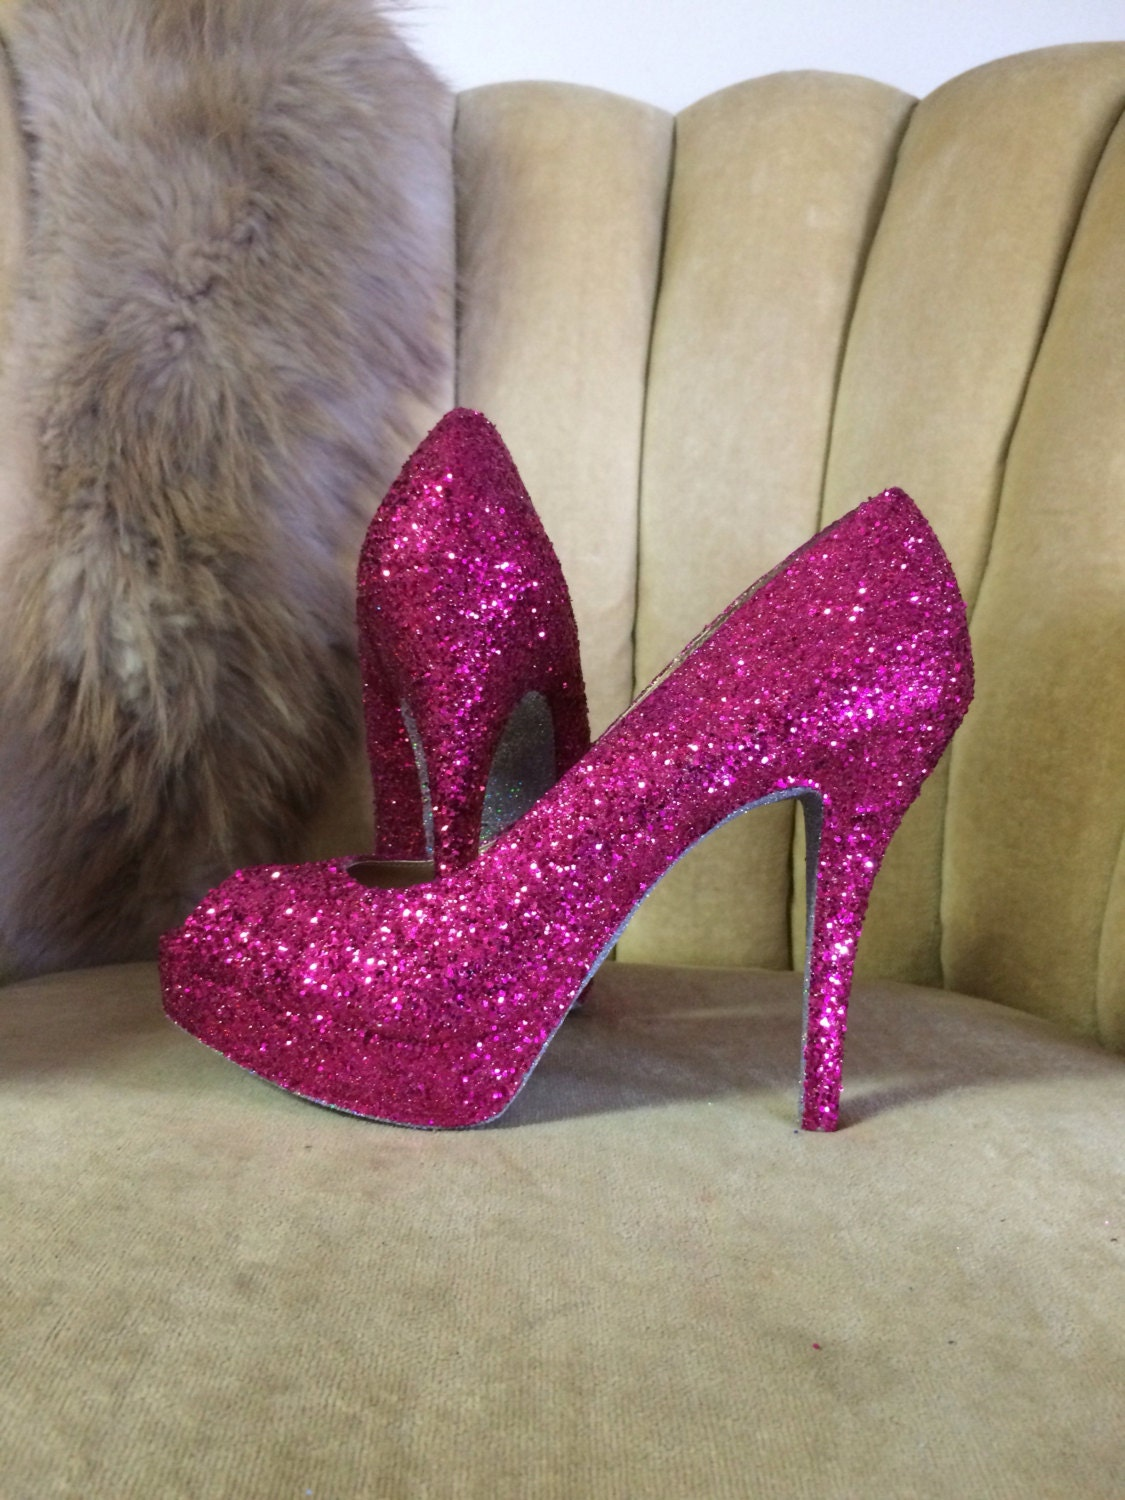 b114babdf56 Custom made to order, open toe Glitter high heels. Hot pink glitter pumps.  Bridal shoes. Sizes 5.5-11